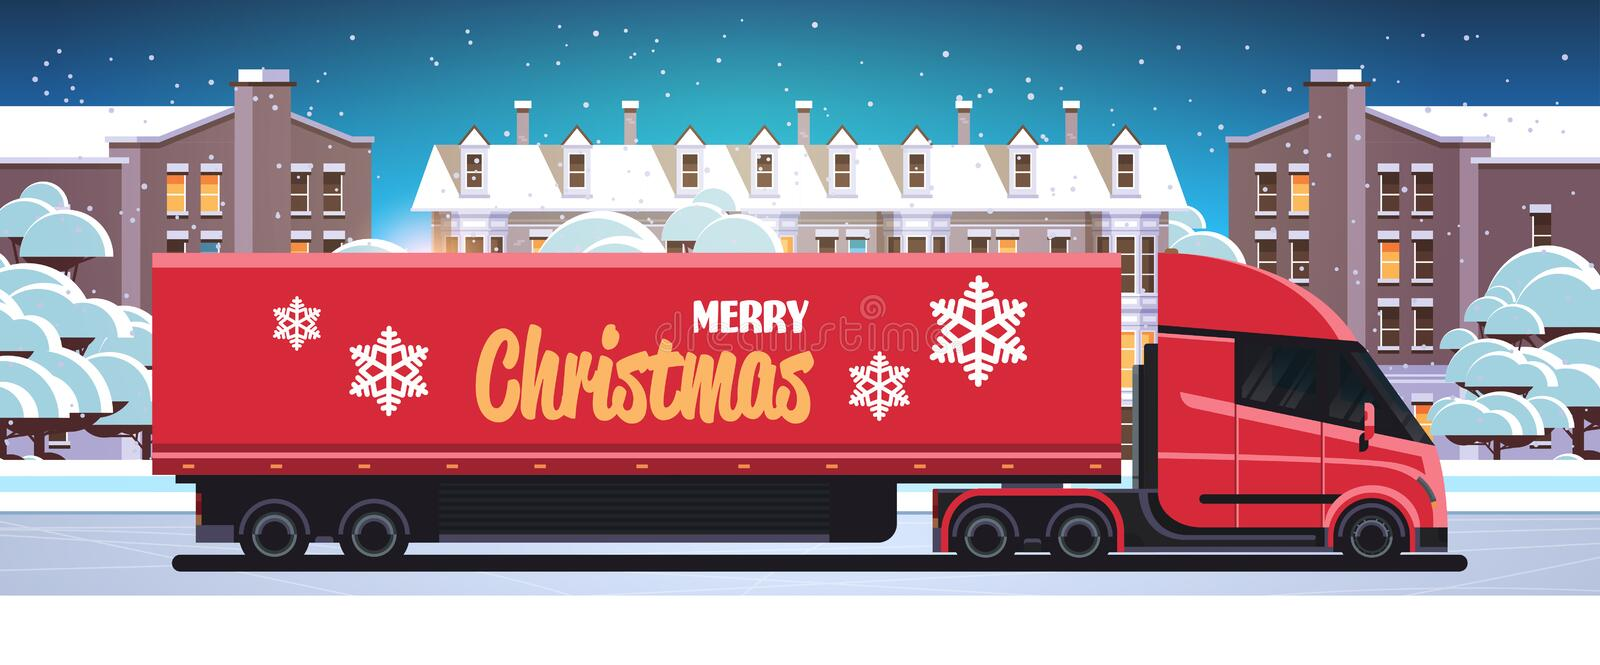 Delivery semi truck driving city street shipping transport for merry christmas happy new year winter holidays. Celebration concept horizontal snowy cityscape royalty free illustration